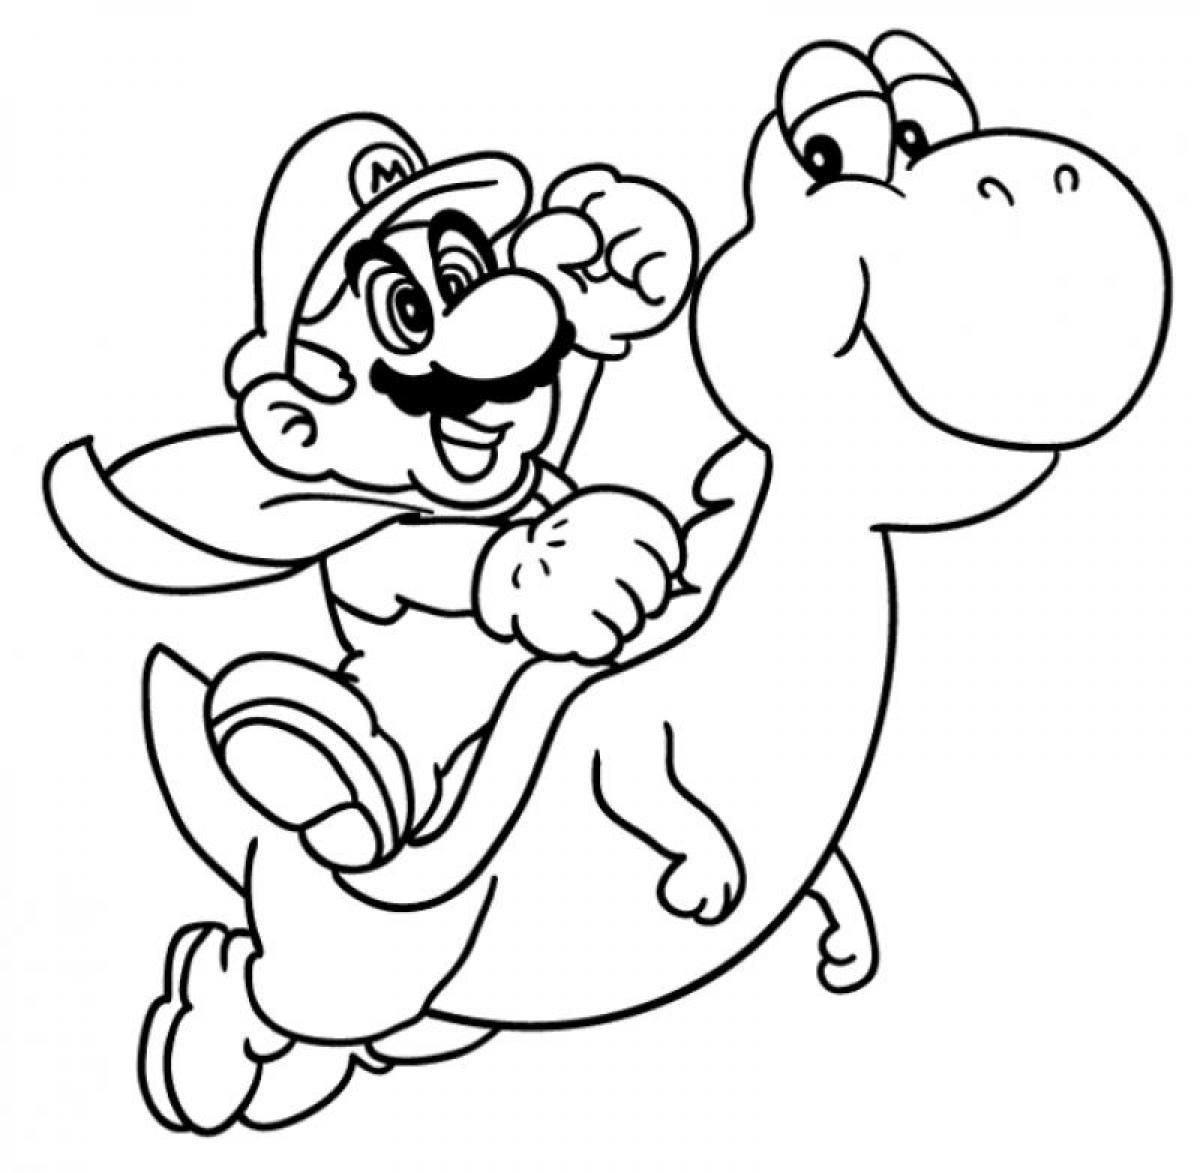 Mobile shimmer and shine coloring games coloring pages ausmalbilder - Cool Super Mario Coloring Pages Selfcoloringpages Com